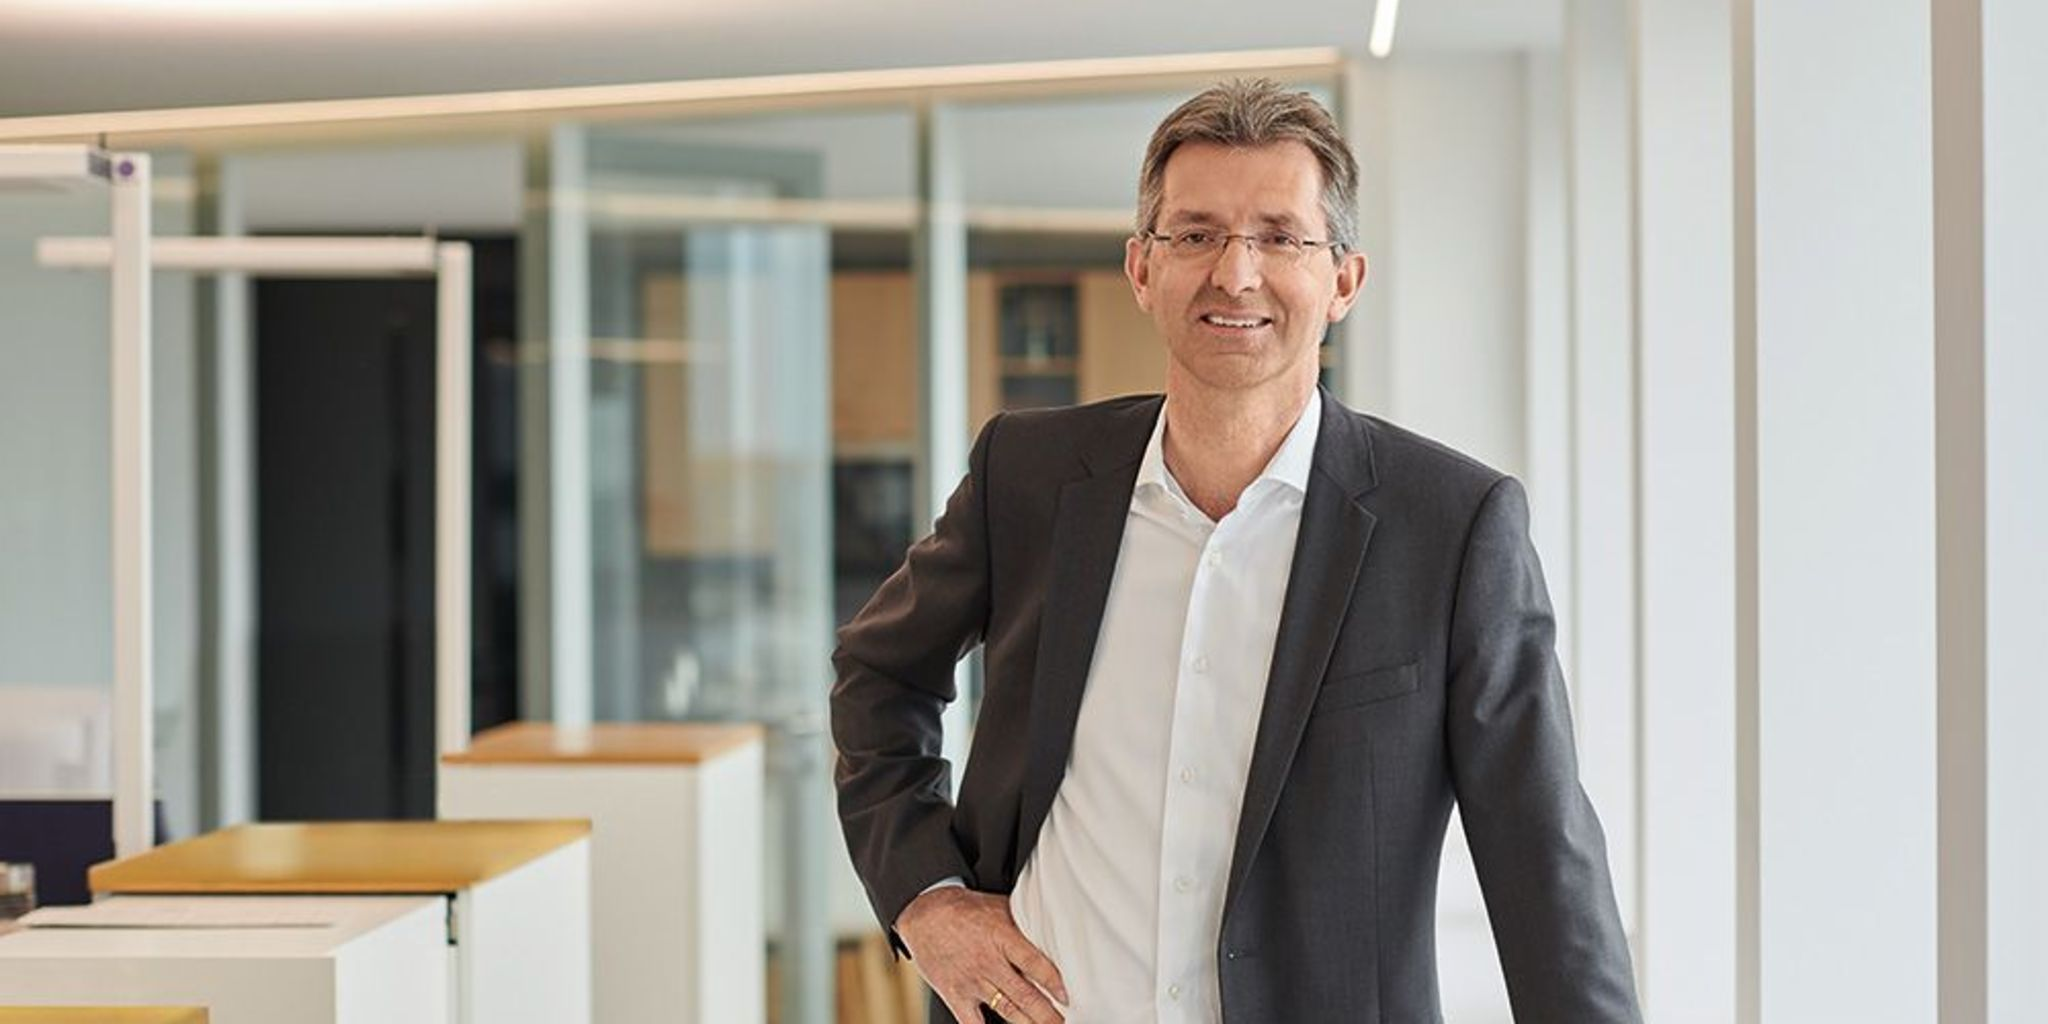 Investments: CFO Justus Hecking-Veltman on the EOS Group's outstanding results in financial year 2018/19